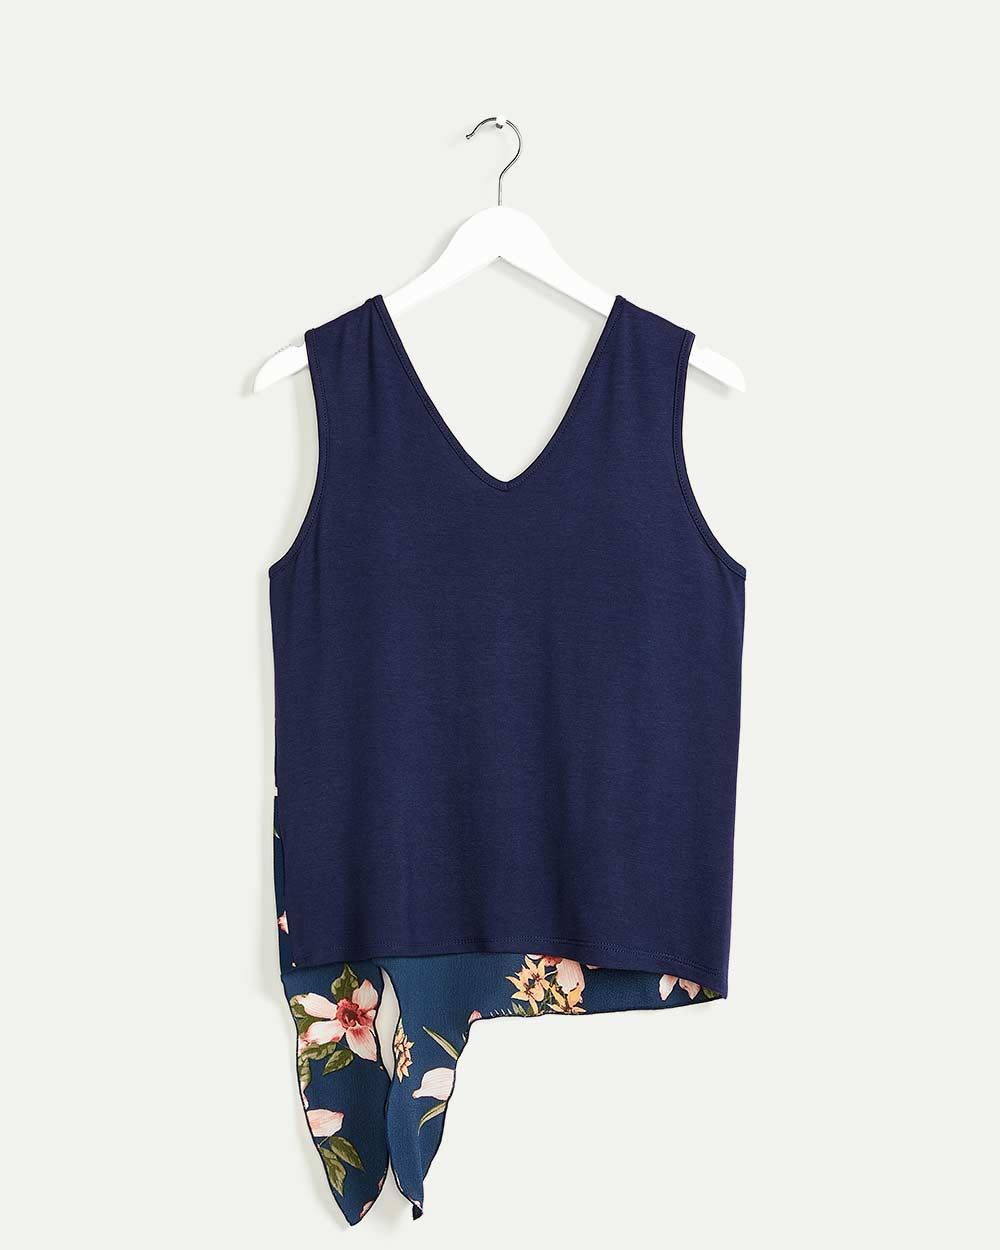 Sleeveless Printed Top with Front Tie